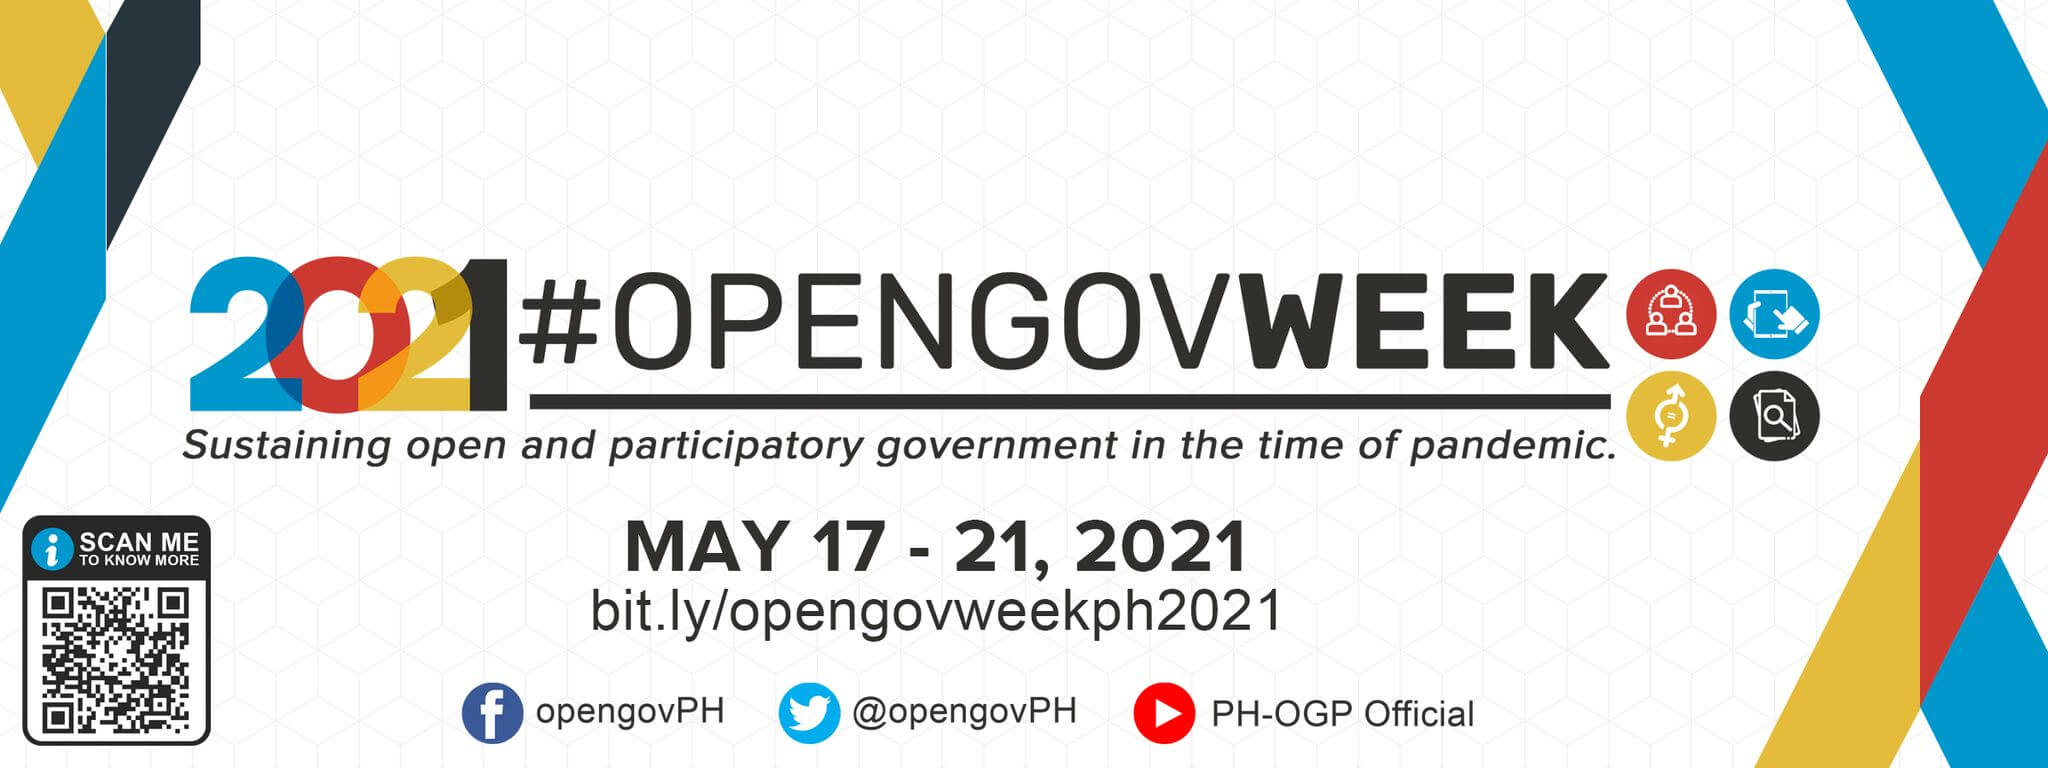 OPEN GOVERNMENT WEEK CELEBRATION